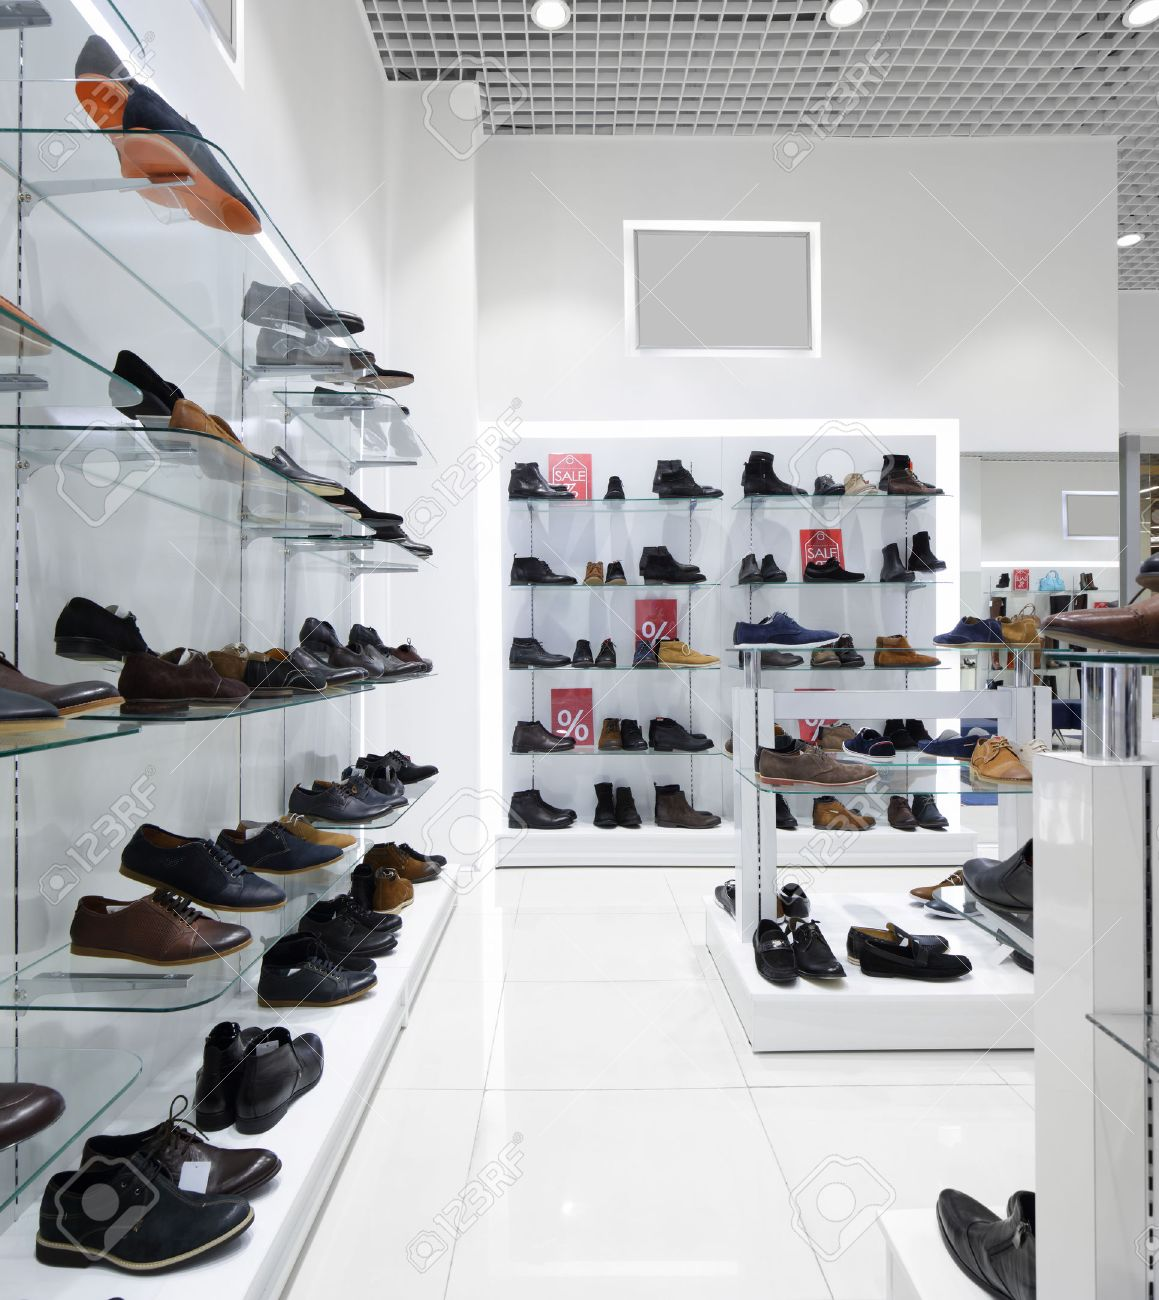 bright and fashionable interior of shoe store in modern mall - 35288680